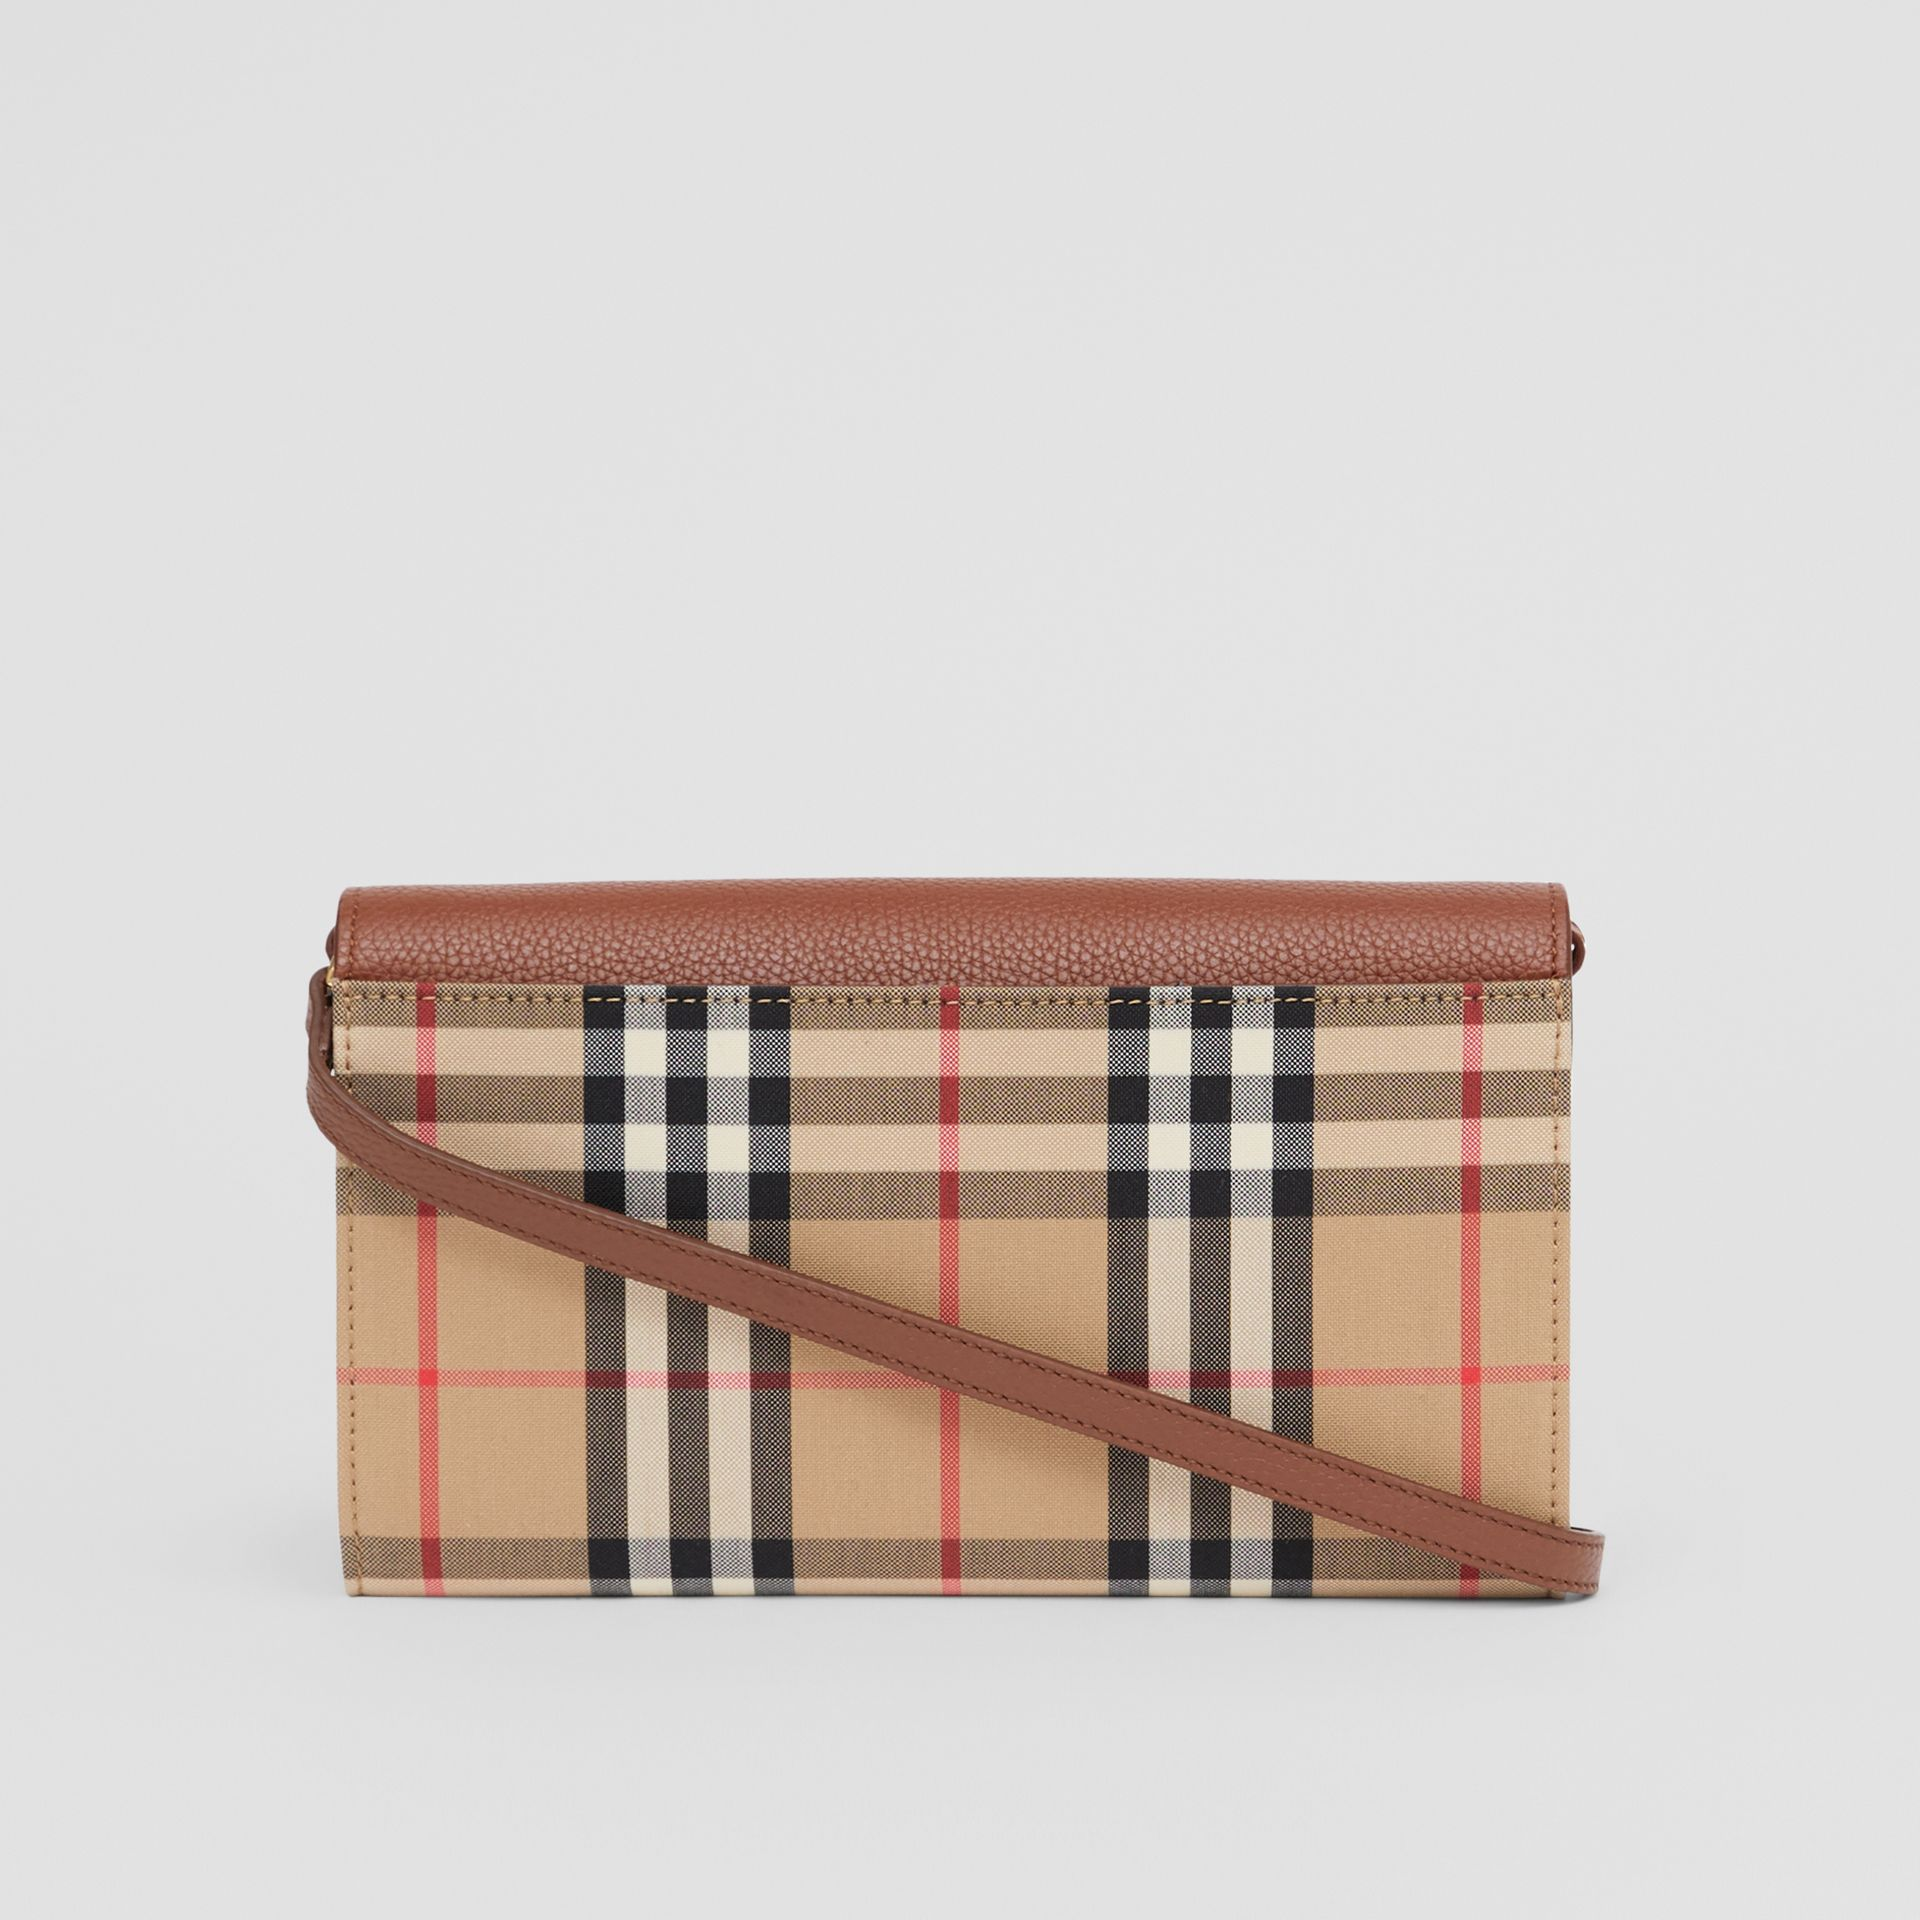 Vintage Check and Leather Wallet with Detachable Strap in Tan - Women | Burberry - gallery image 7